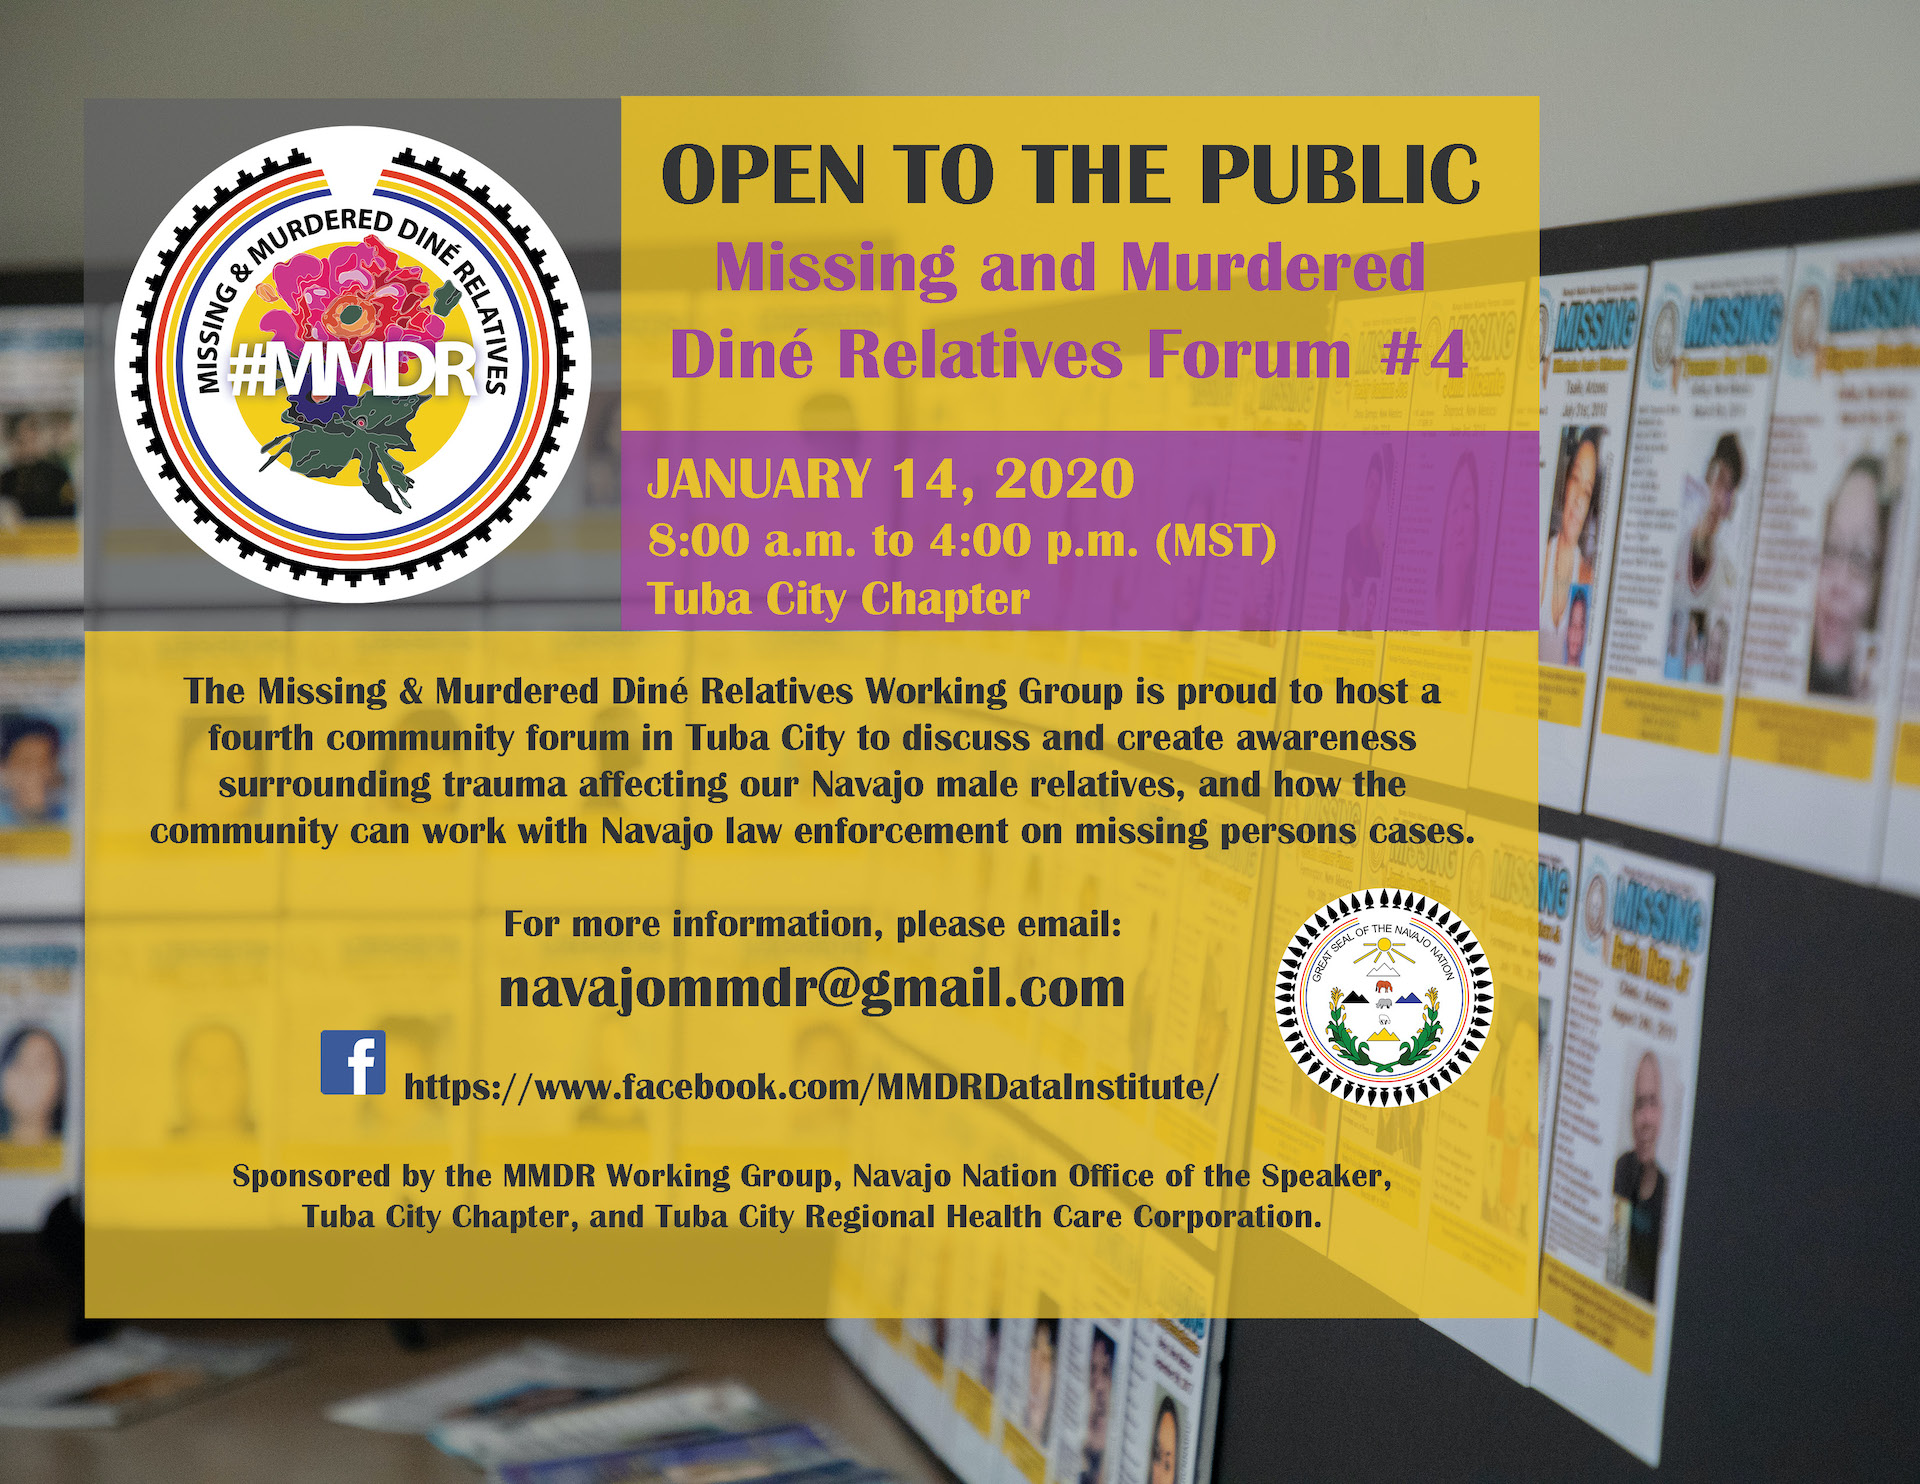 Forum for Missing and Murdered Diné Relatives set for Arizona